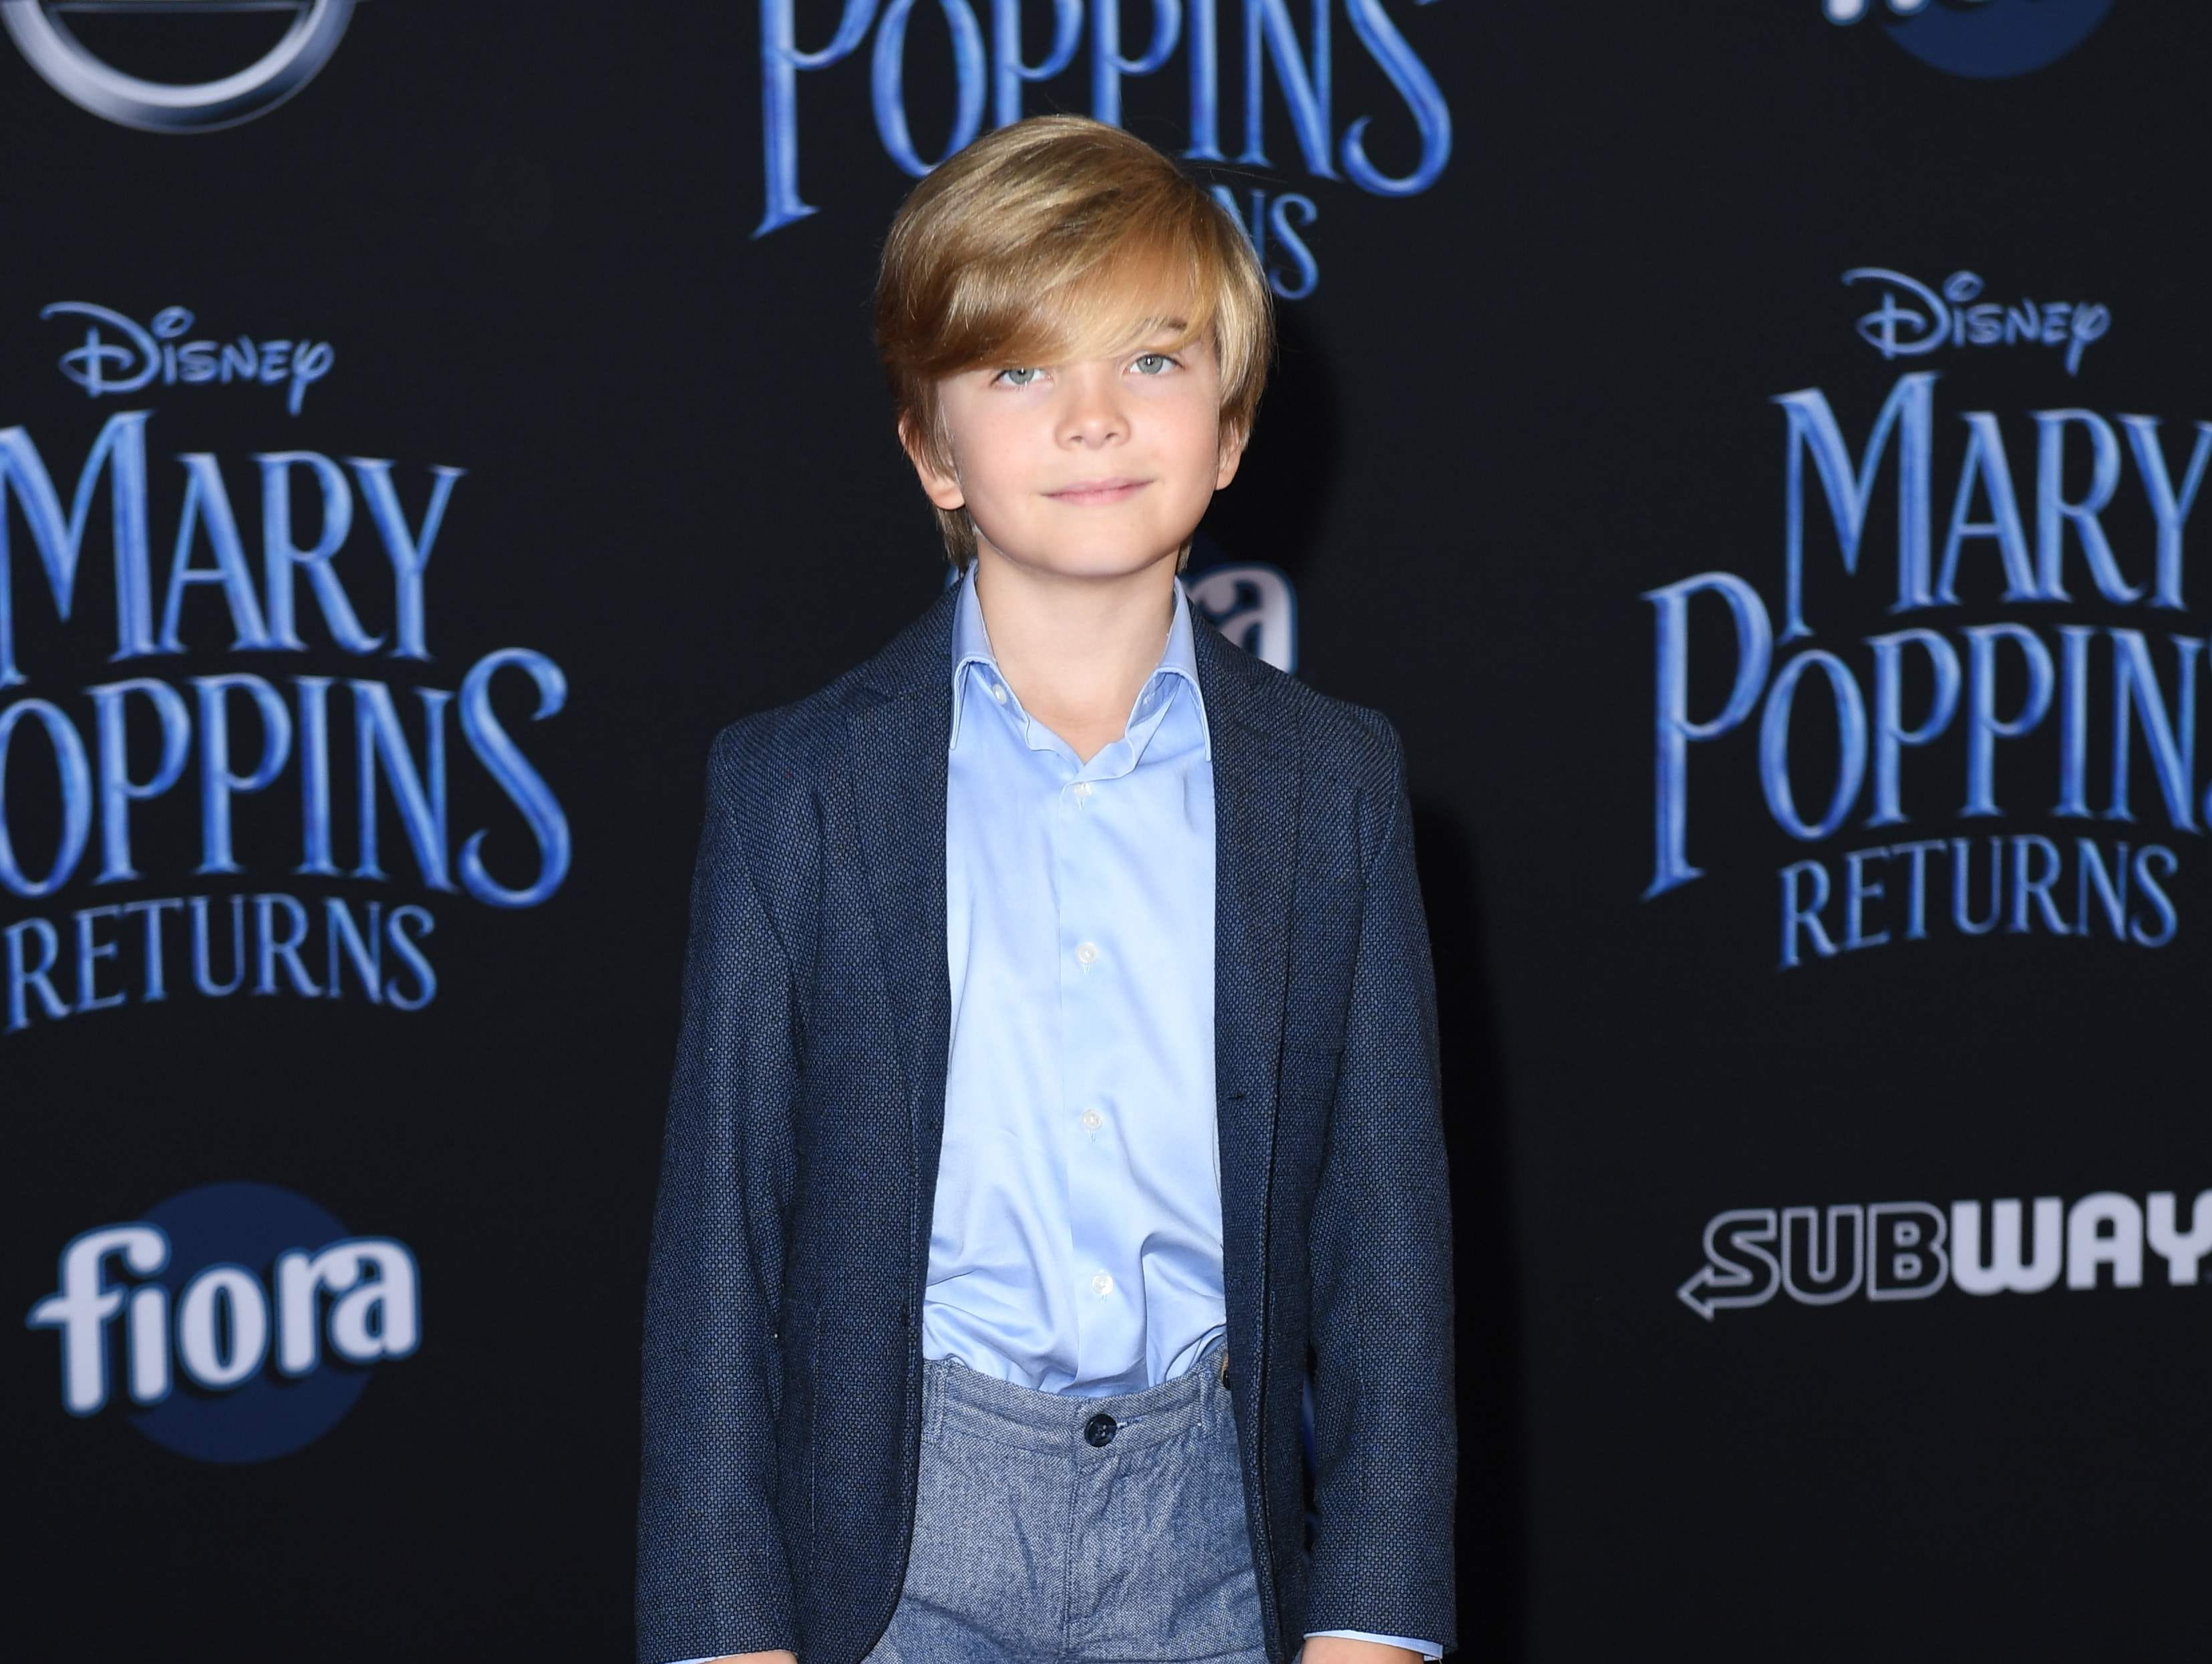 """US actor Joel Dawson arrives for the world premiere of Disney's """"Mary Poppins Returns"""" at the Dolby theatre in Hollywood on November 29, 2018. (Photo by VALERIE MACON / AFP)VALERIE MACON/AFP/Getty Images ORG XMIT: 'Mary Pop ORIG FILE ID: AFP_1B810T"""